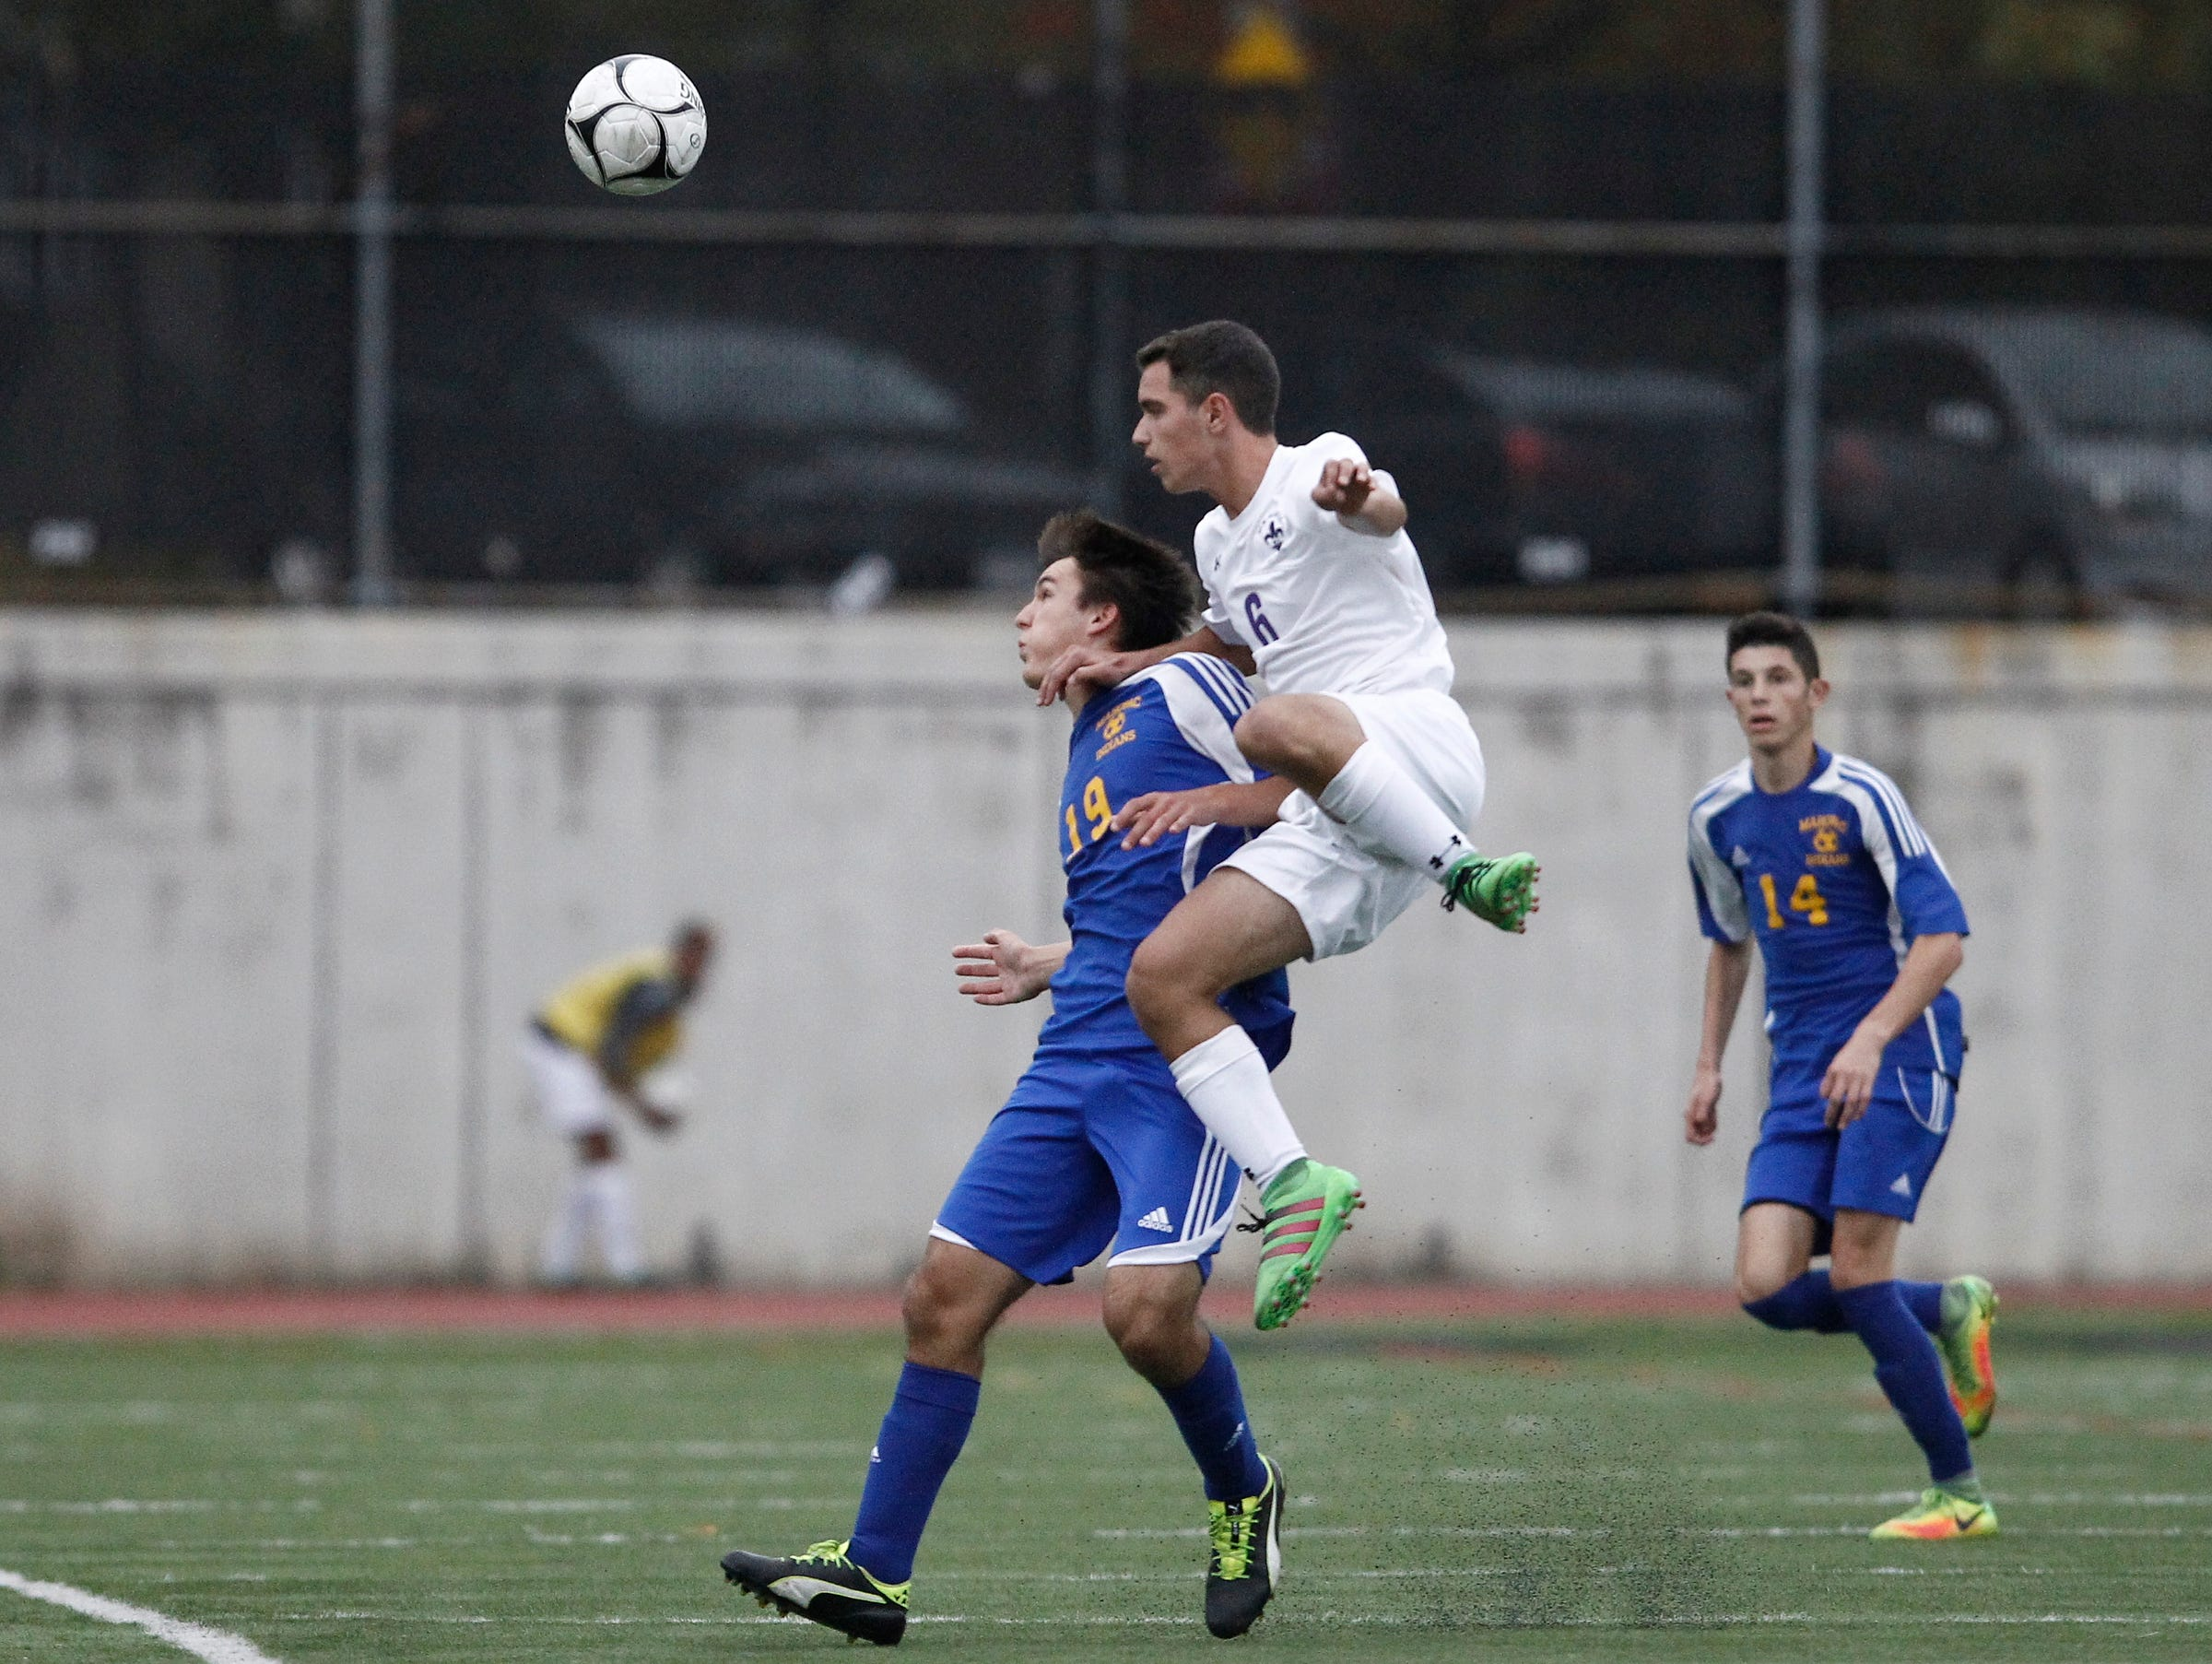 New Rochelle's Andrew Sirola (6) leaps for a header as Mahopac's Nick Dipola (19) defends during their 2-0 win in the boys soccer Class AA first round at New Rochelle High School in New Rochelle on Thursday, October 20, 2016.